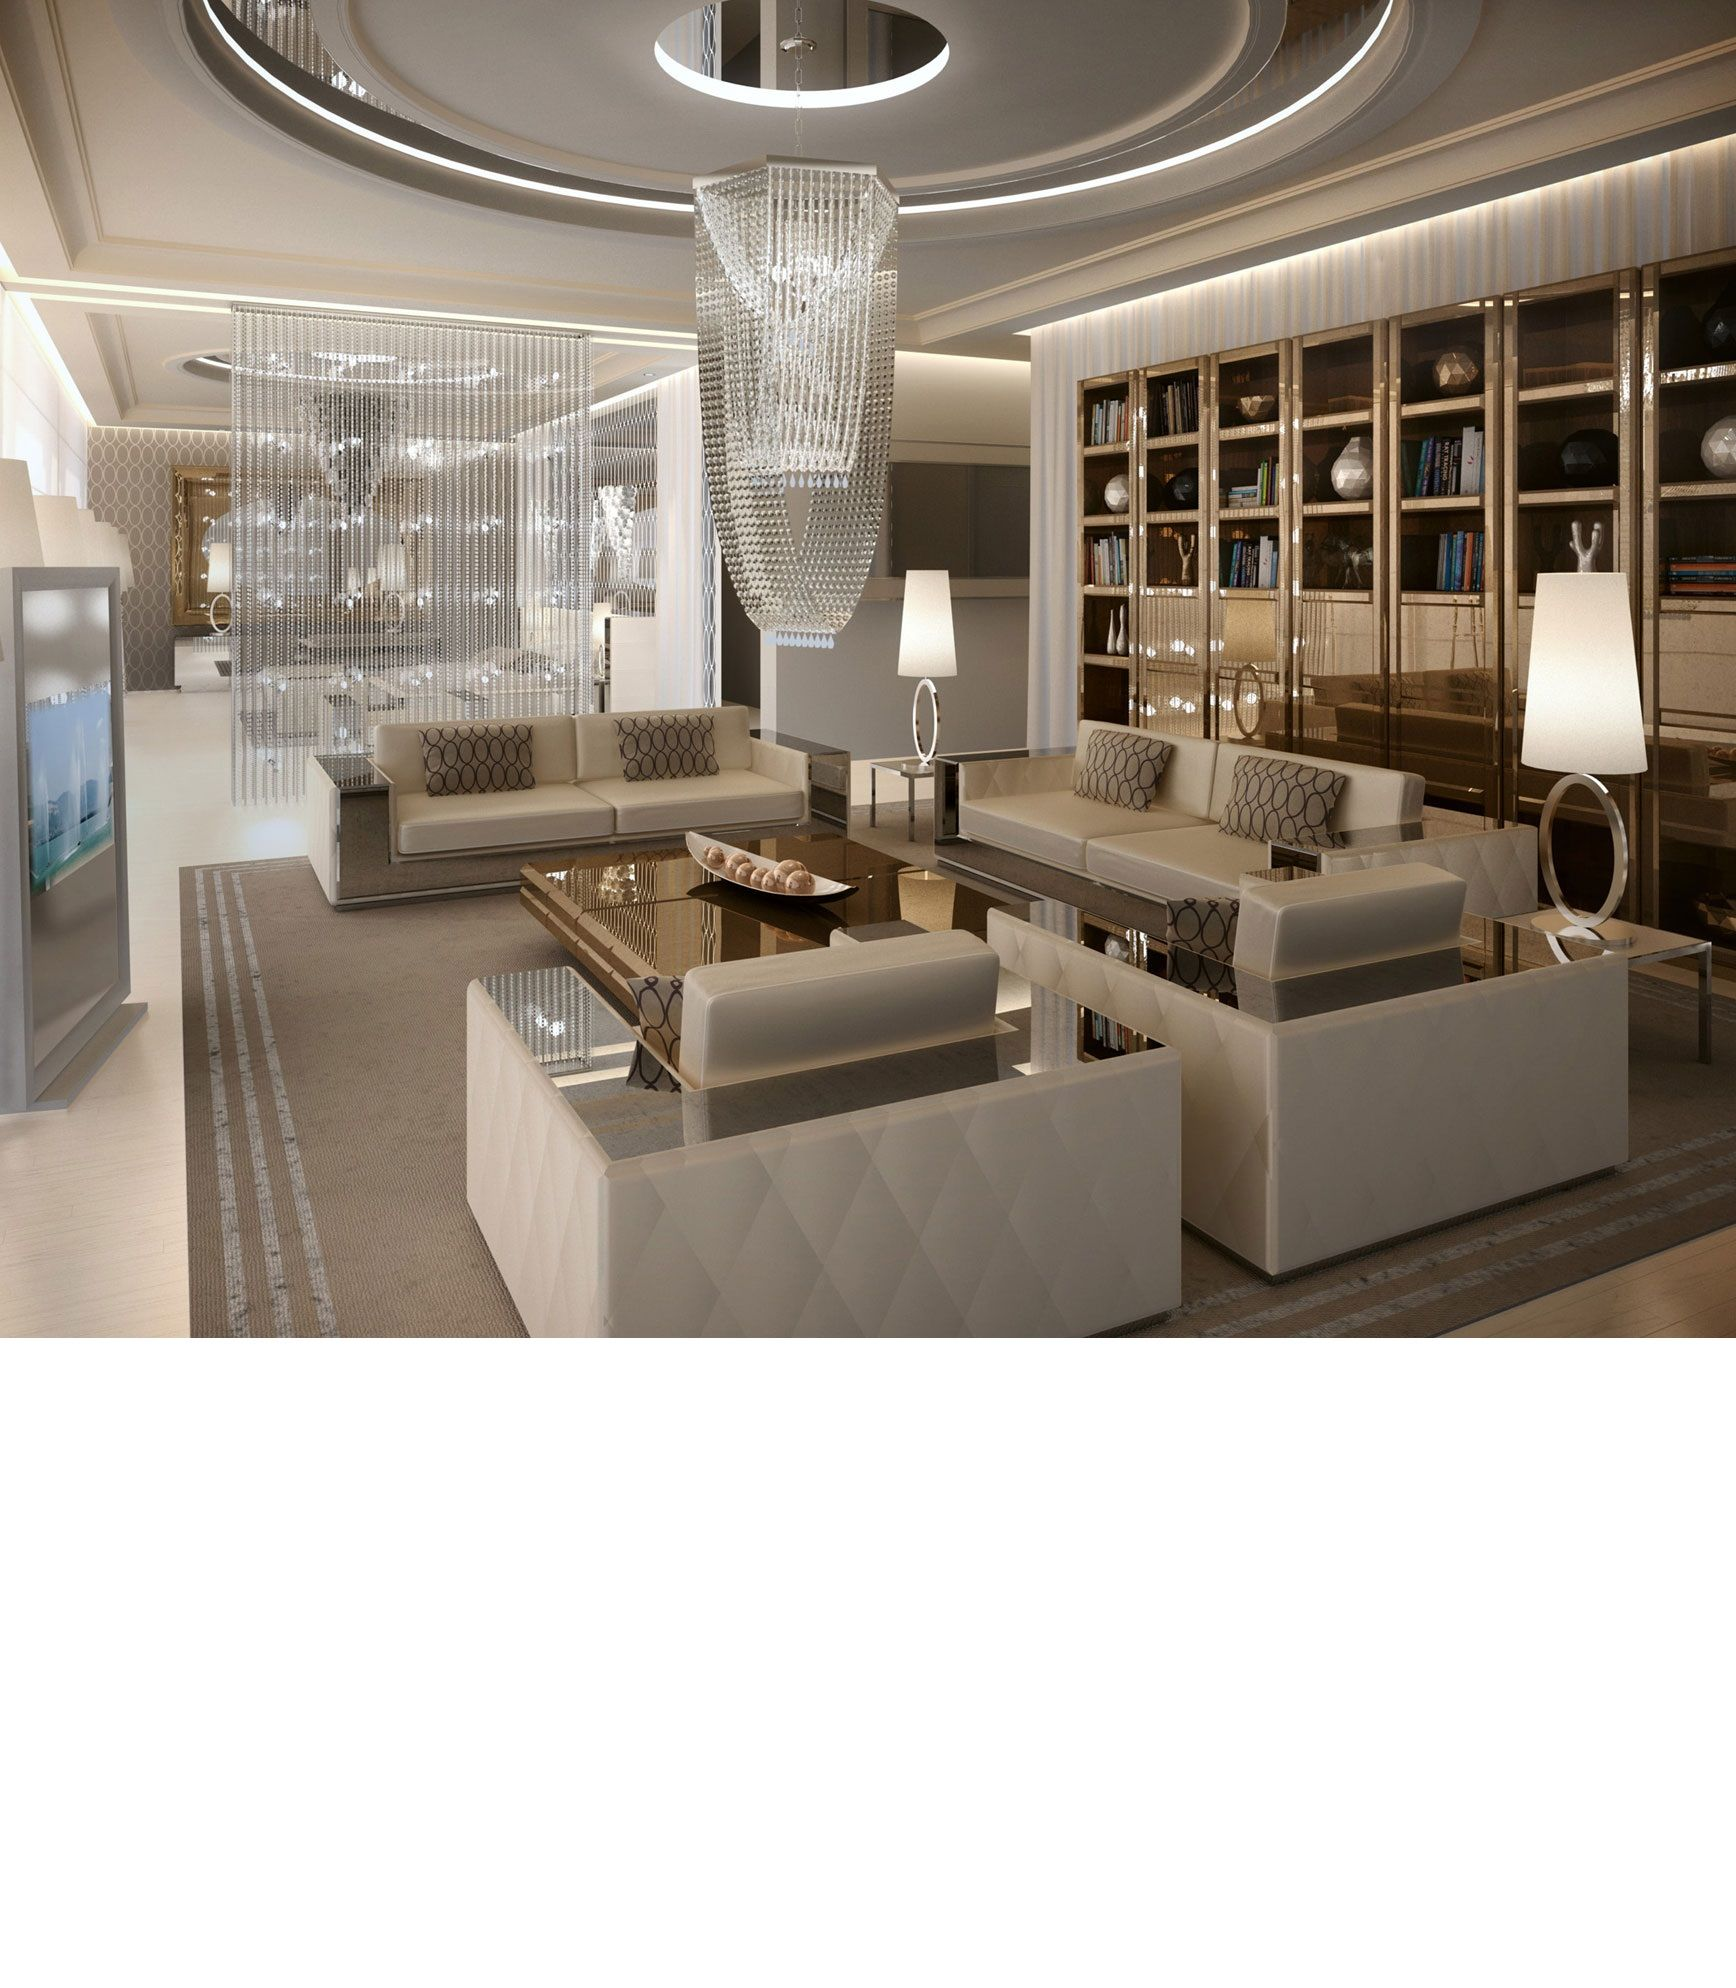 Living Room Luxury Designs Love The Idea Of A Long Big Cabinetry In The Back Of A Living Room